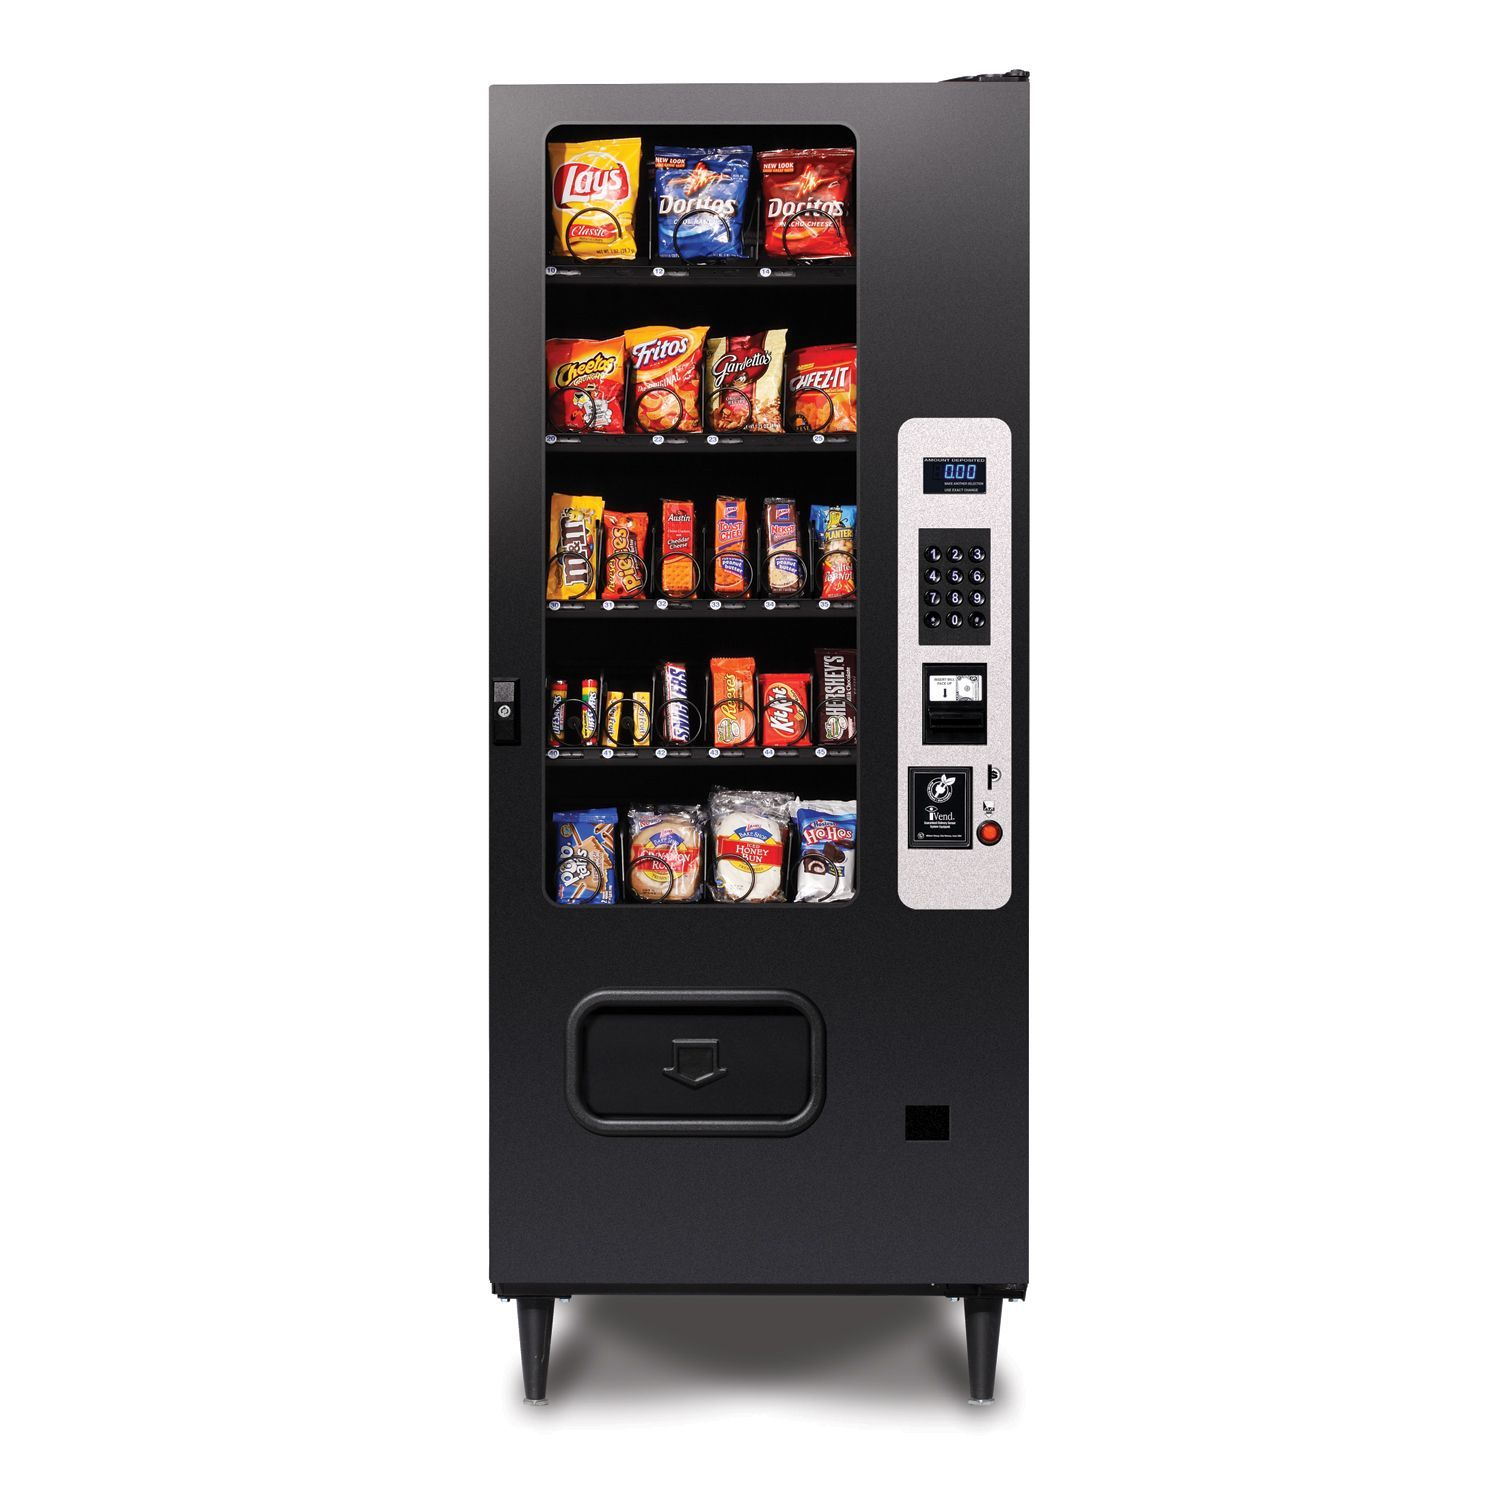 Snack Vending Machine | Vending machine, Vending machines ...